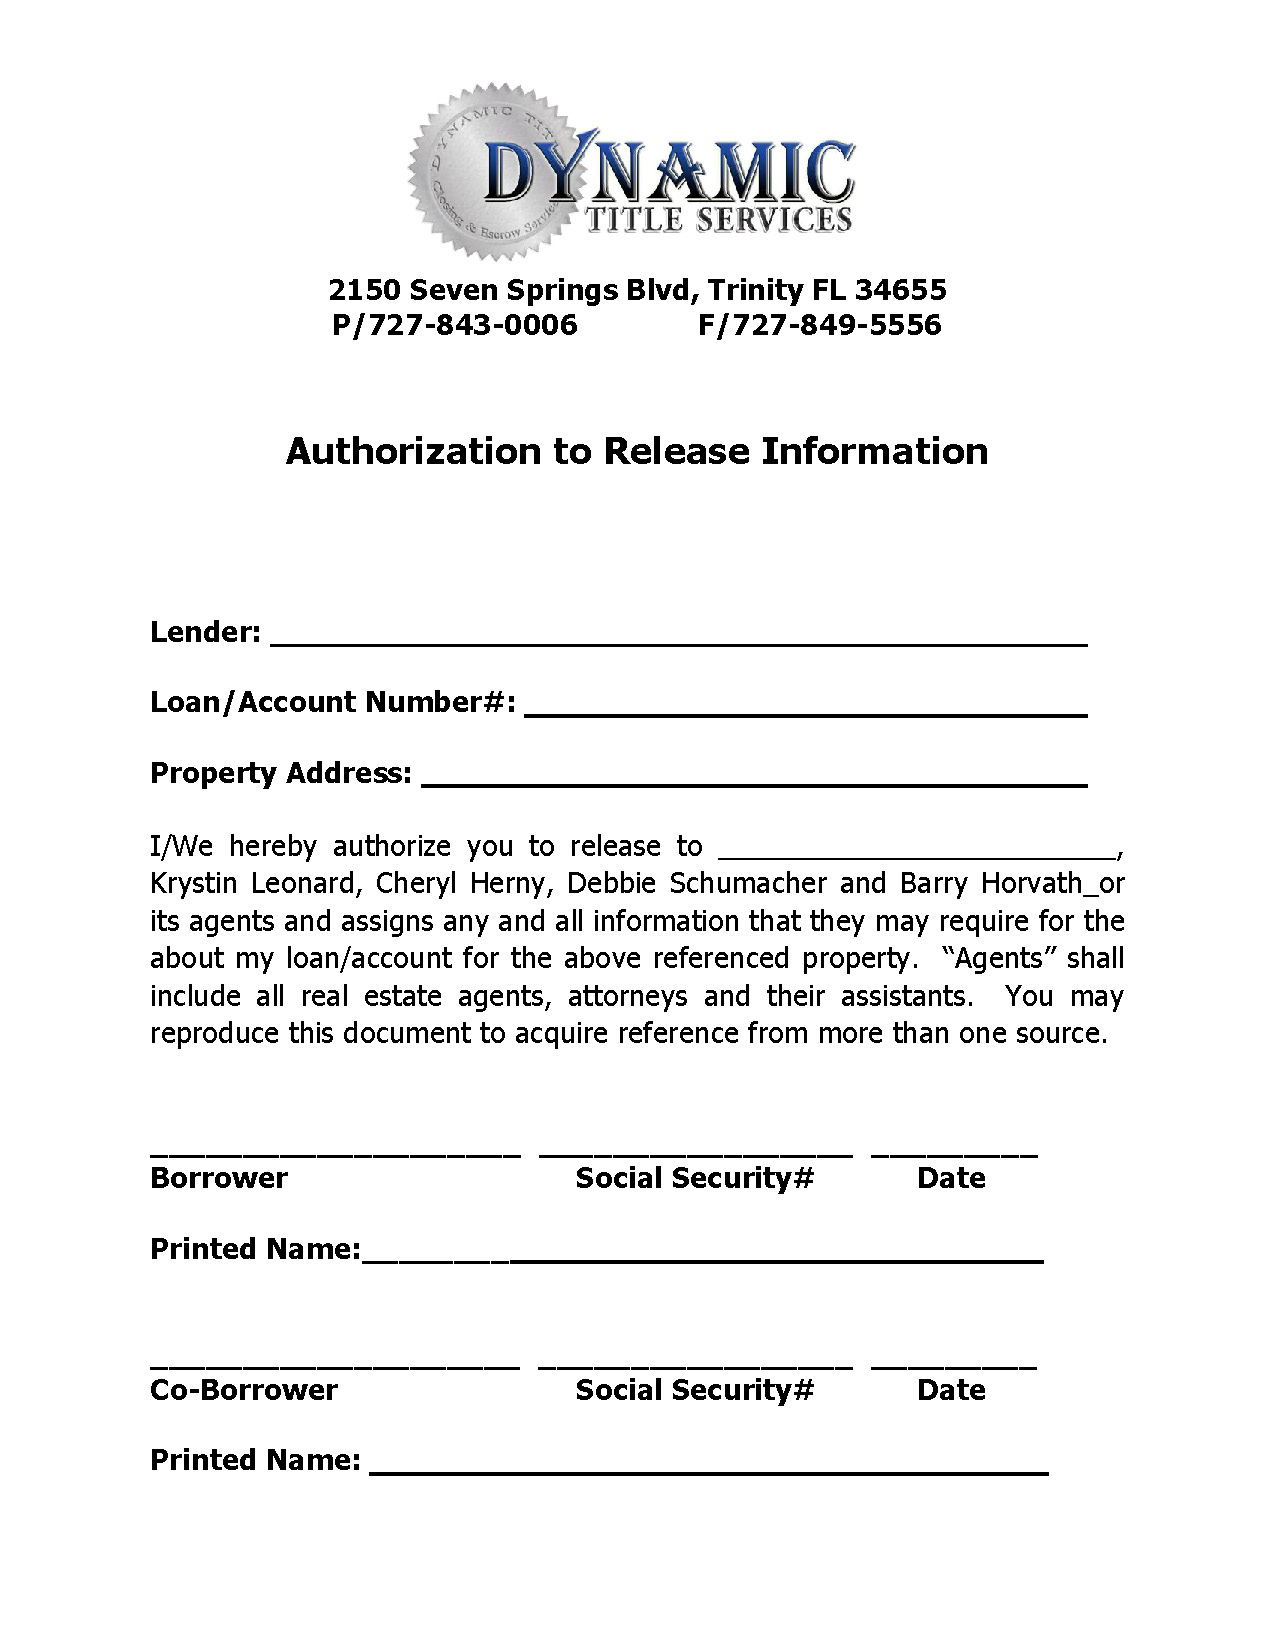 Authorization to Release